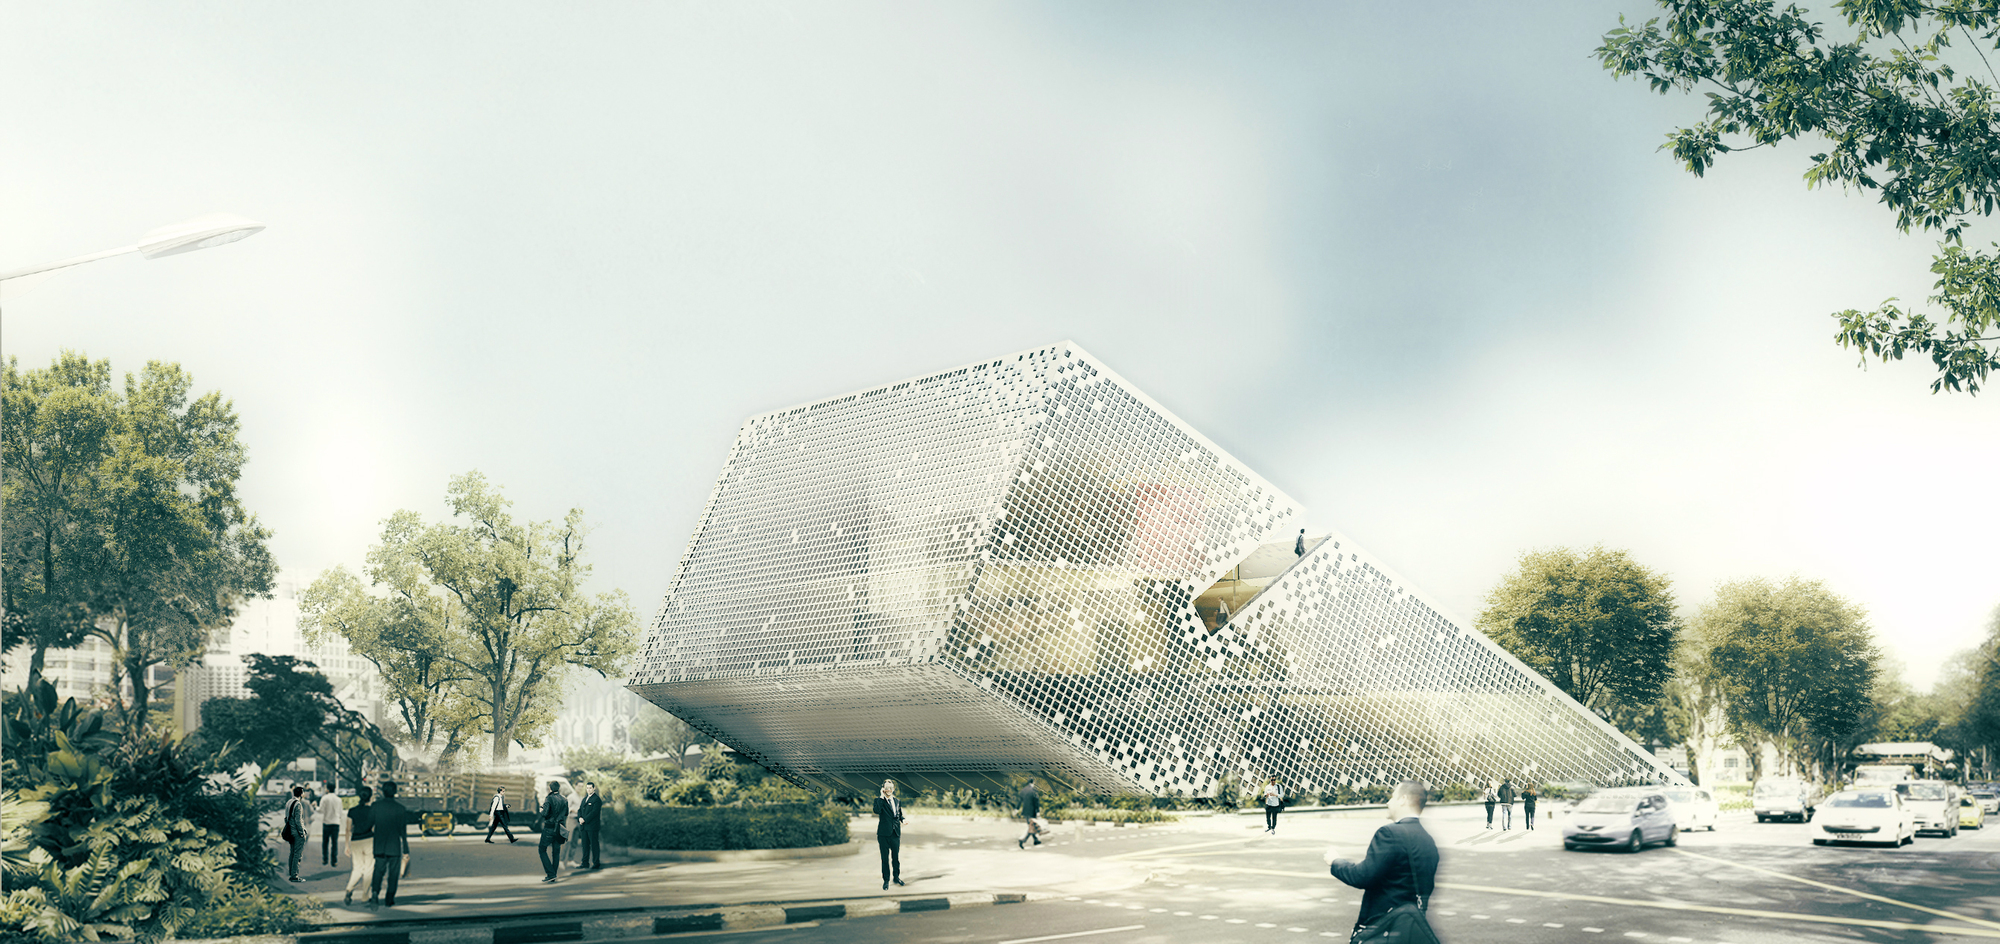 New Wave Architecture Designs Sustainable Office Building